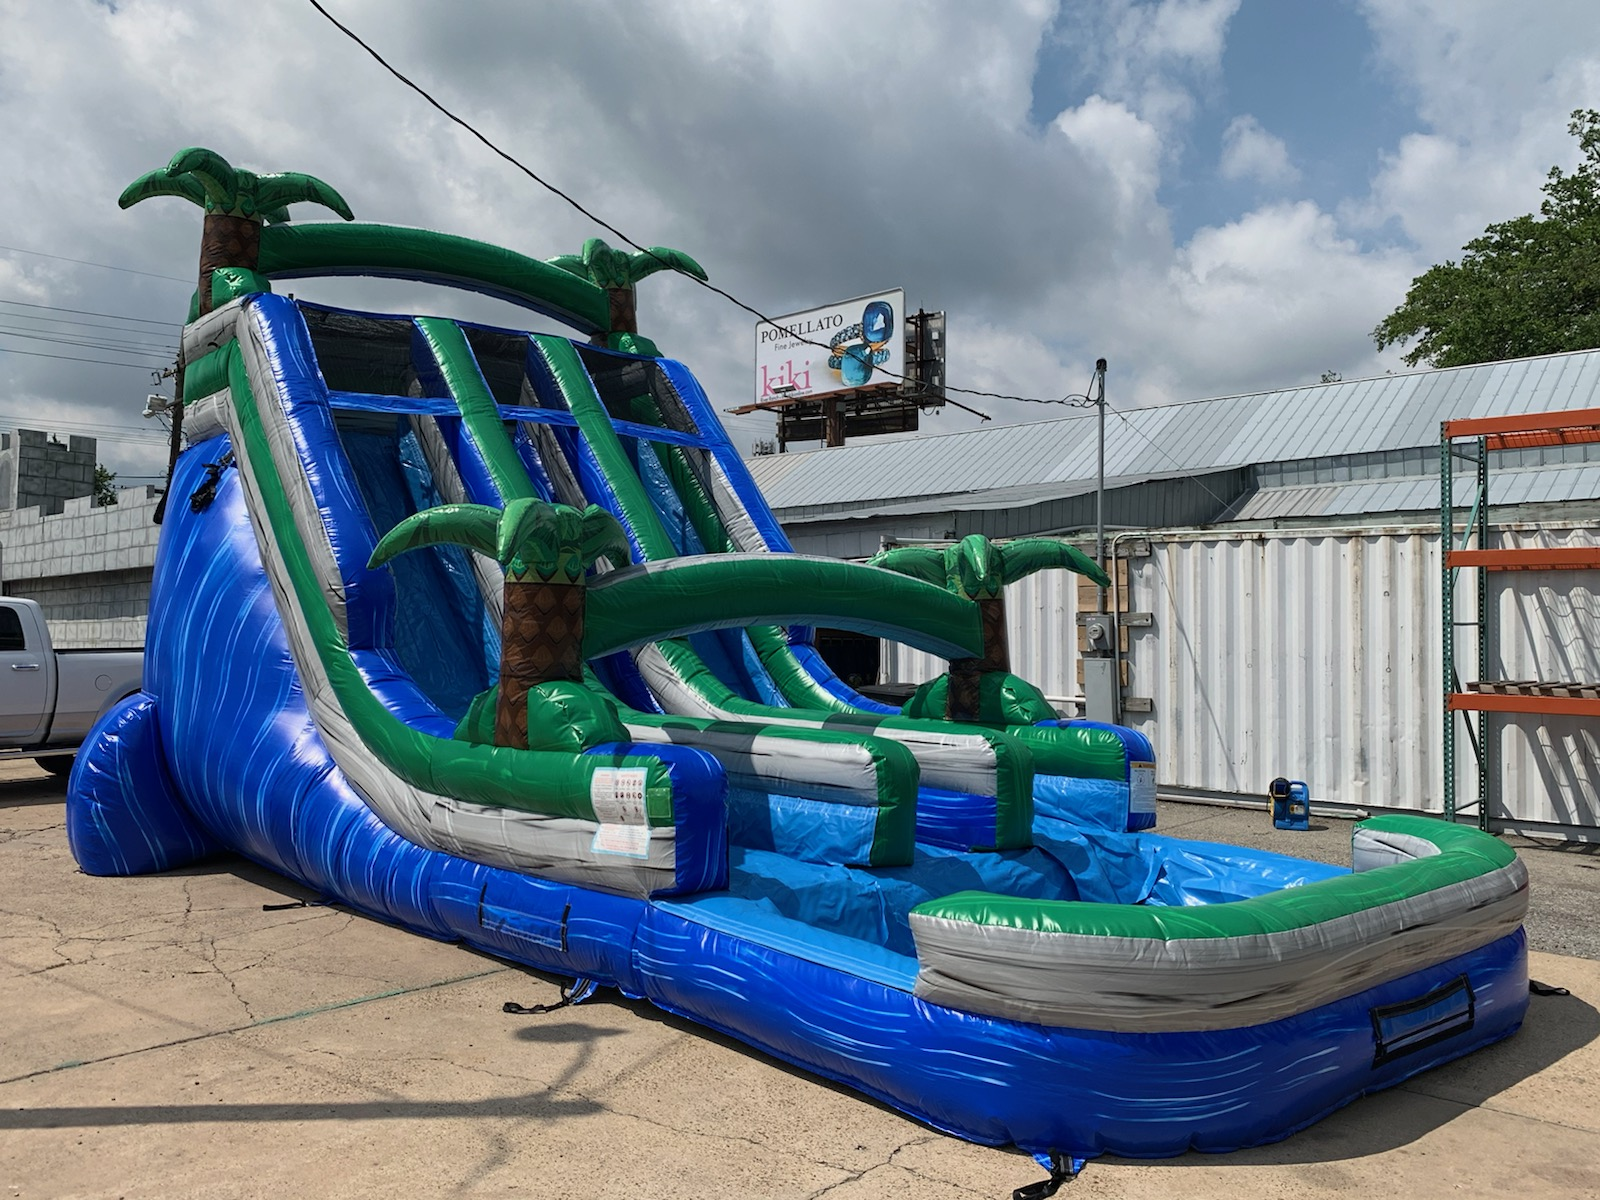 19ft Wild Rapids Water Slide with A Huge Pool